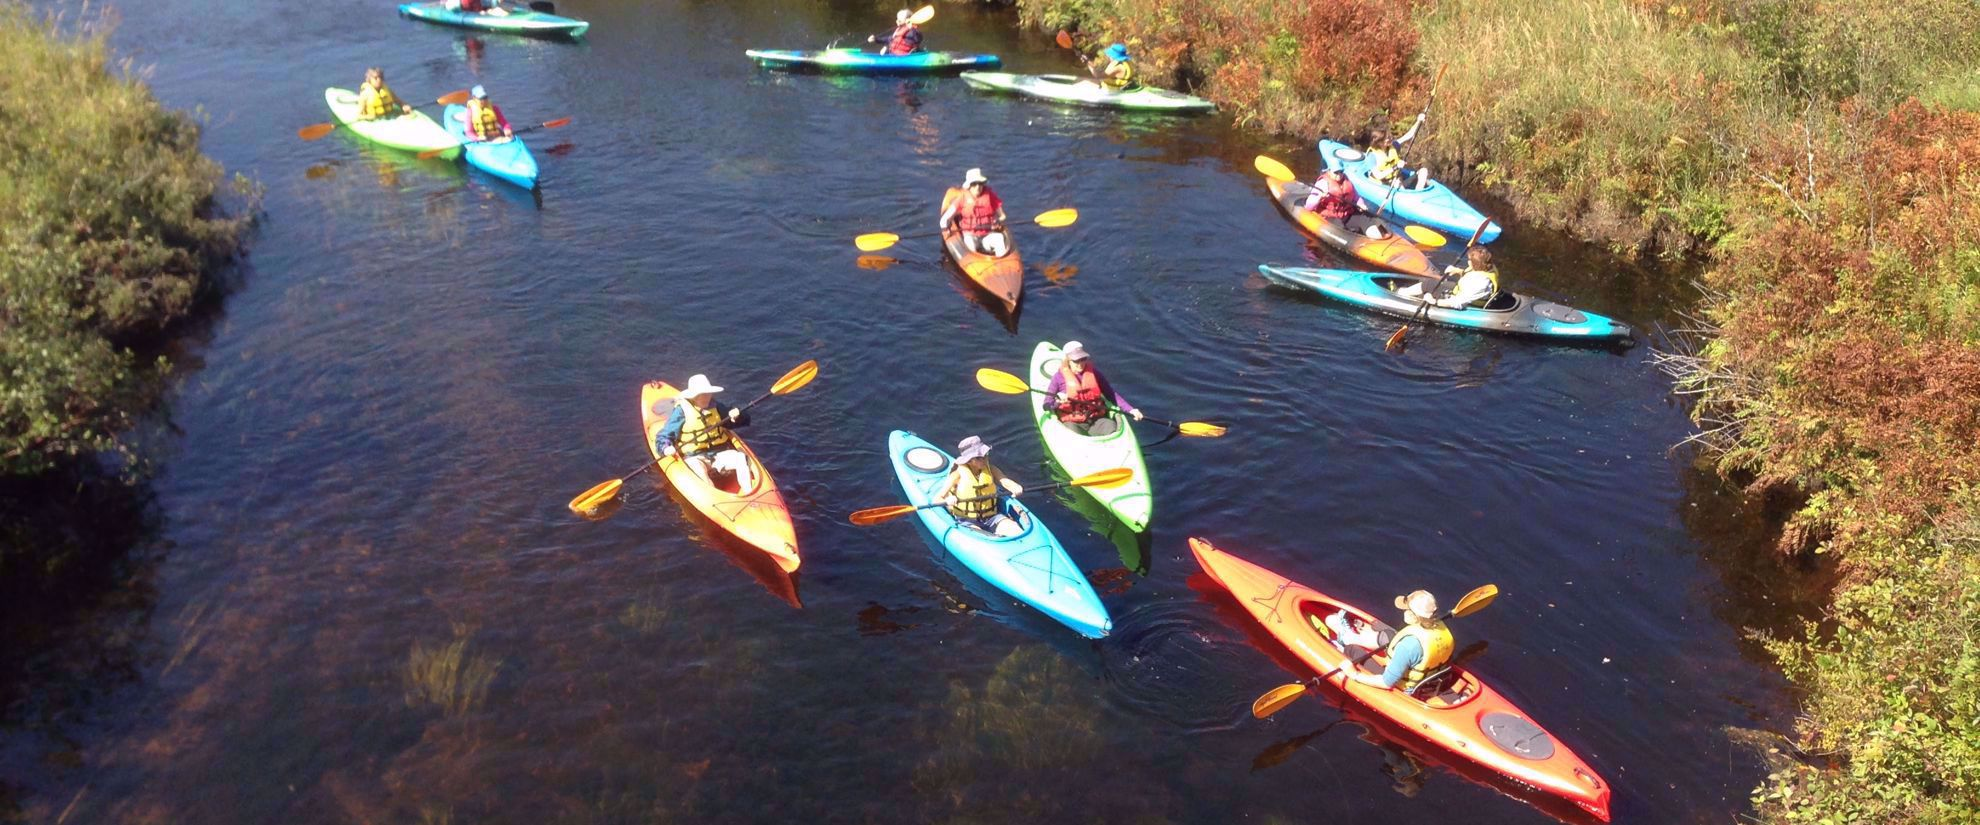 Women's travel group kayaking in Adirondacks